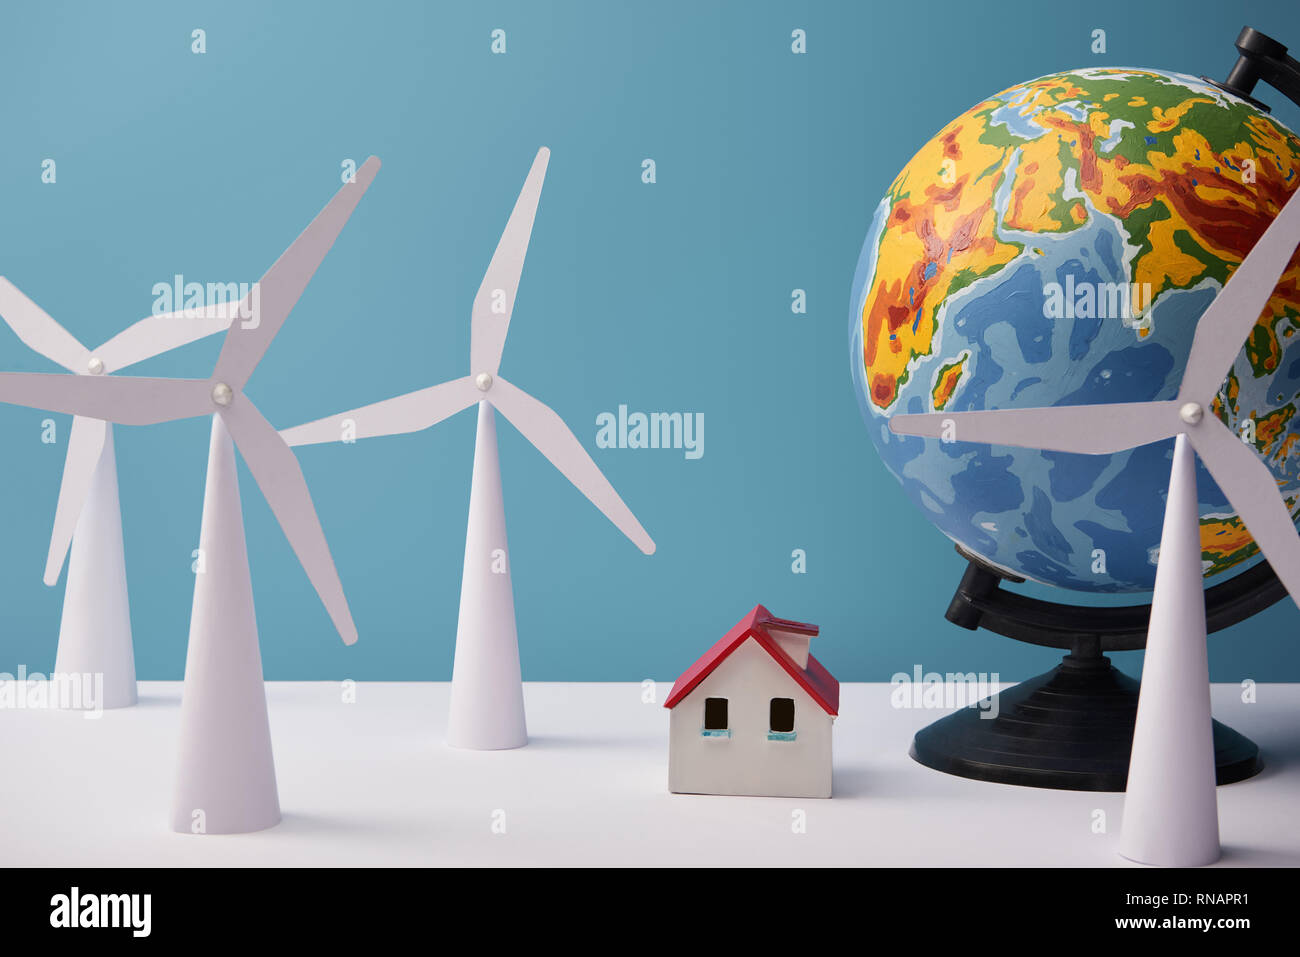 windmill and house models with globe on white table and blue background - Stock Image